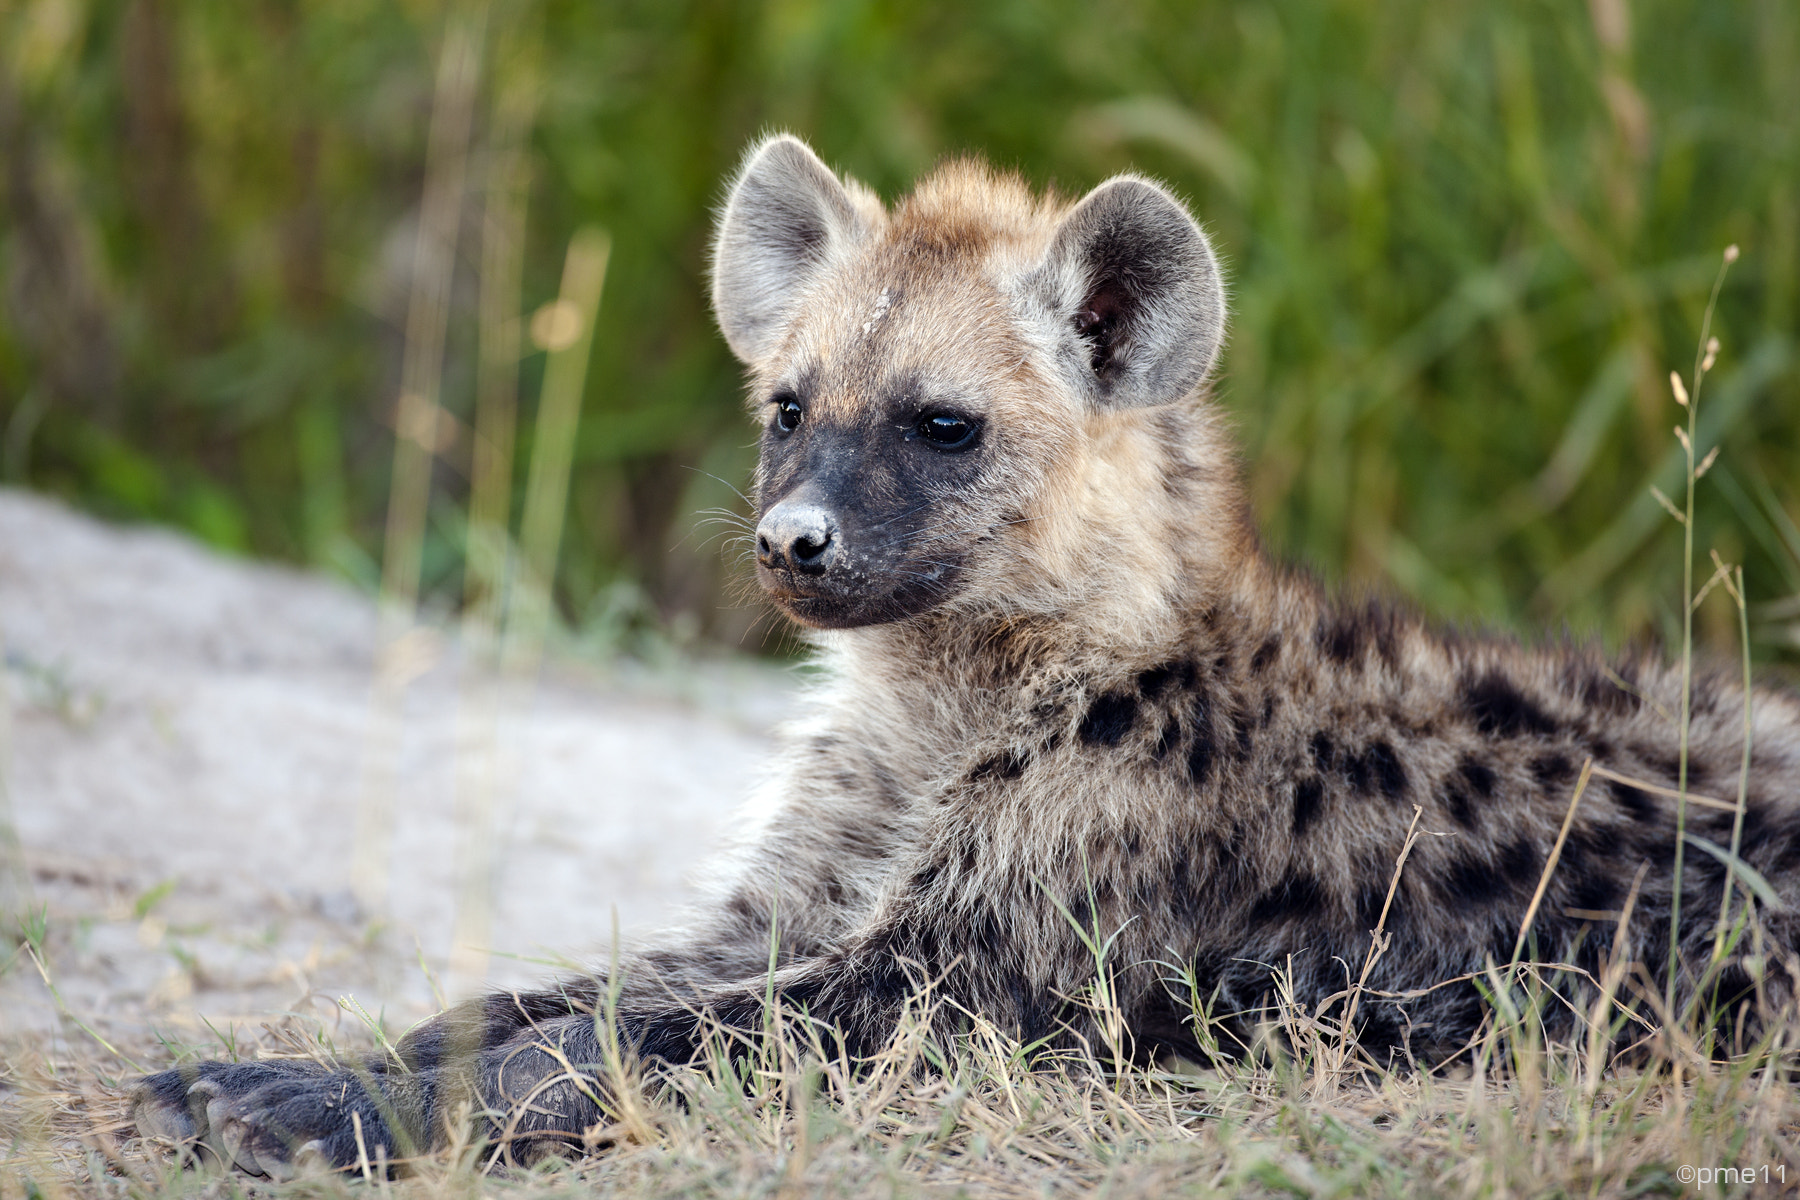 Photograph Spotted Hyena (juvenile) by Patrick Meier on 500px